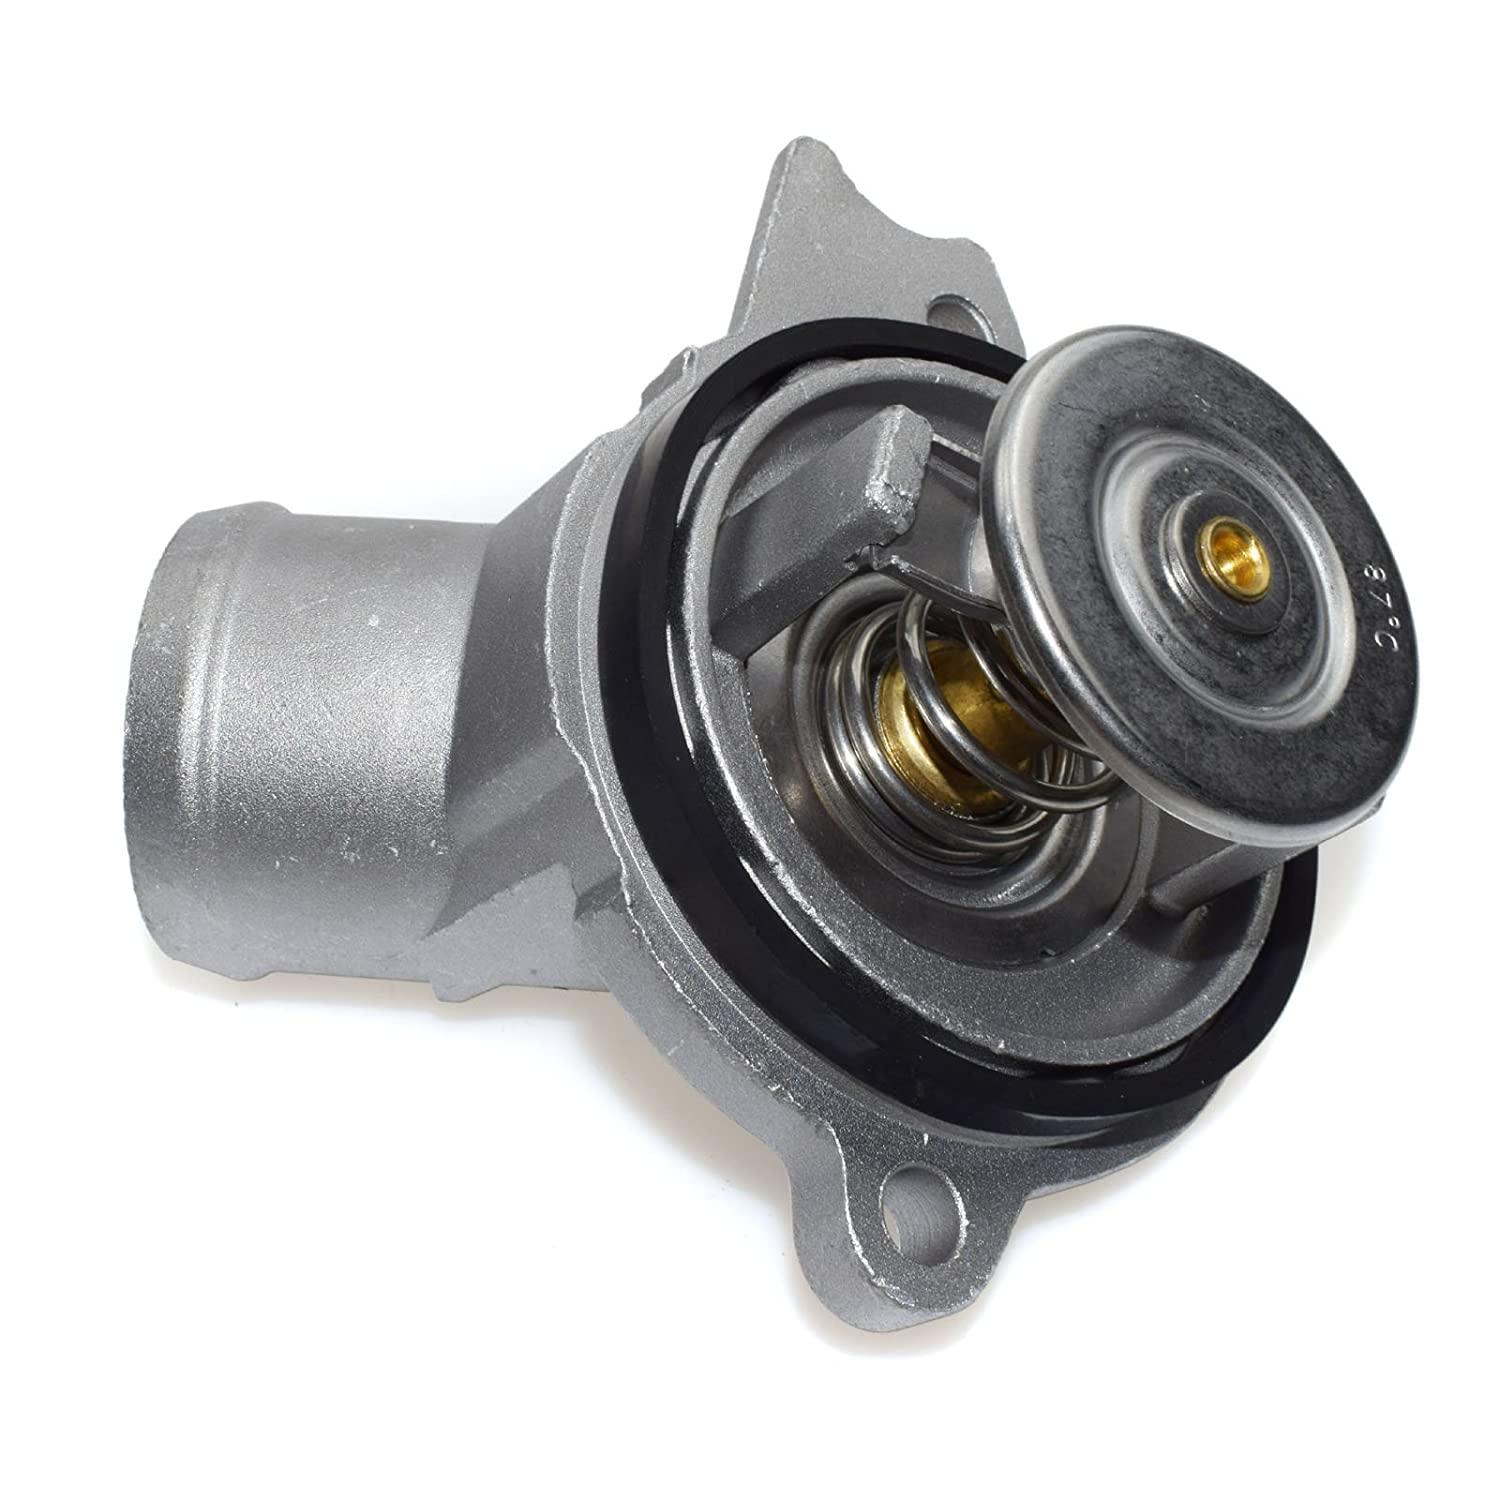 Thermostat 1122030275 f/ür CLK ML SL CL CLS E500 E320 C240 C320 G500 CLK55 AMG ML55 AMG 2000-2007